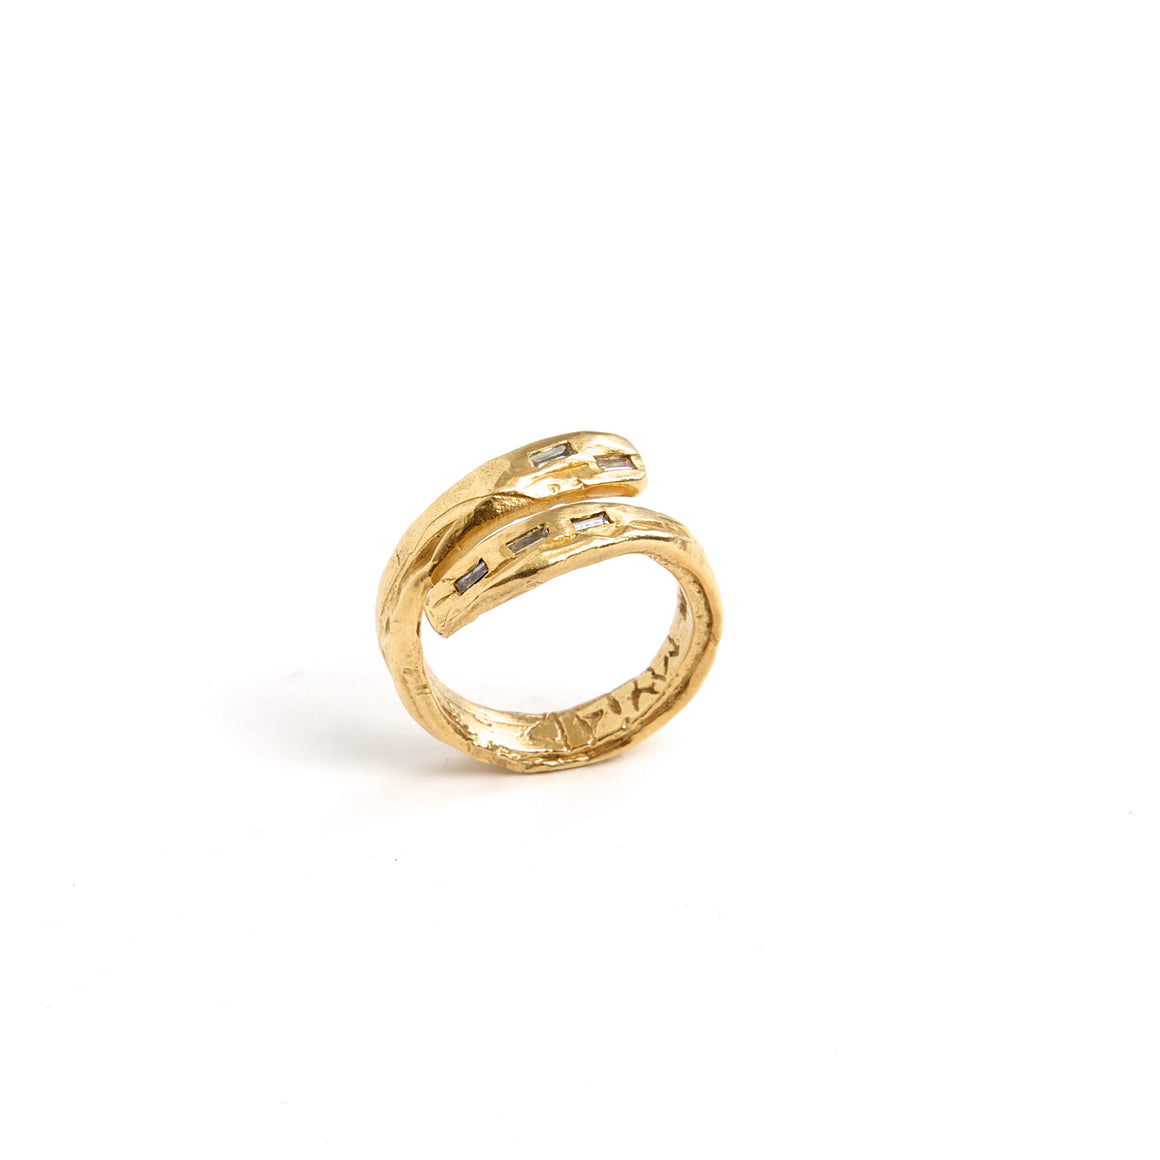 Spine Ring in gold with Five Diamond Baguettes - Alexandra Koumba Designs